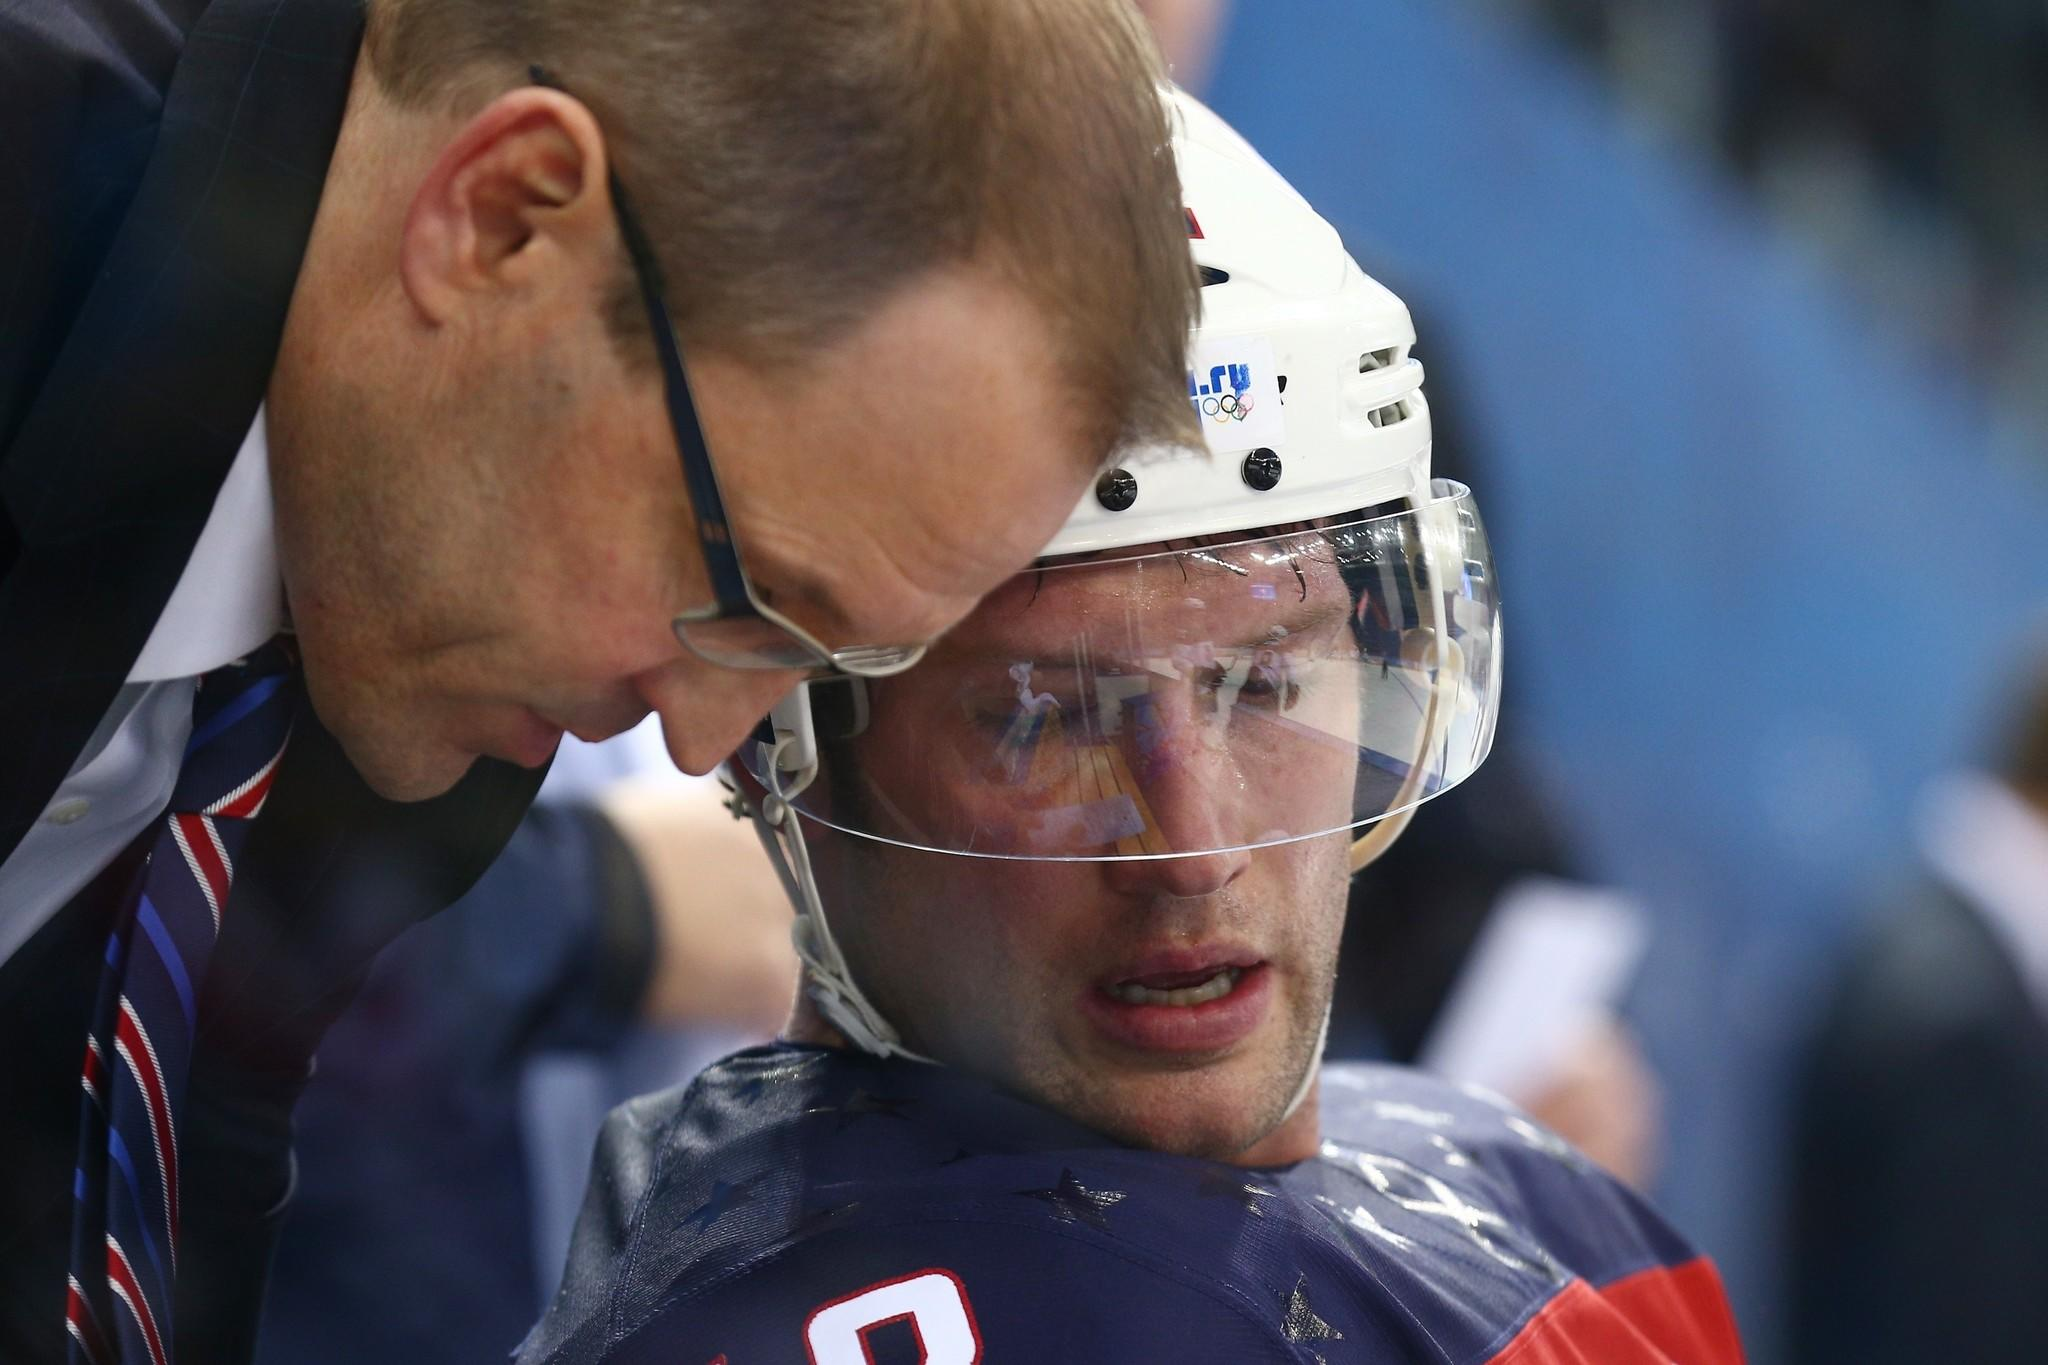 Coach Dan Bylsma talks with Blake Wheeler on the bench during the United States' quarterfinal win Wednesday over the Czech Republic, 5-2. The U.S. will face Canada in the semifinals Friday.